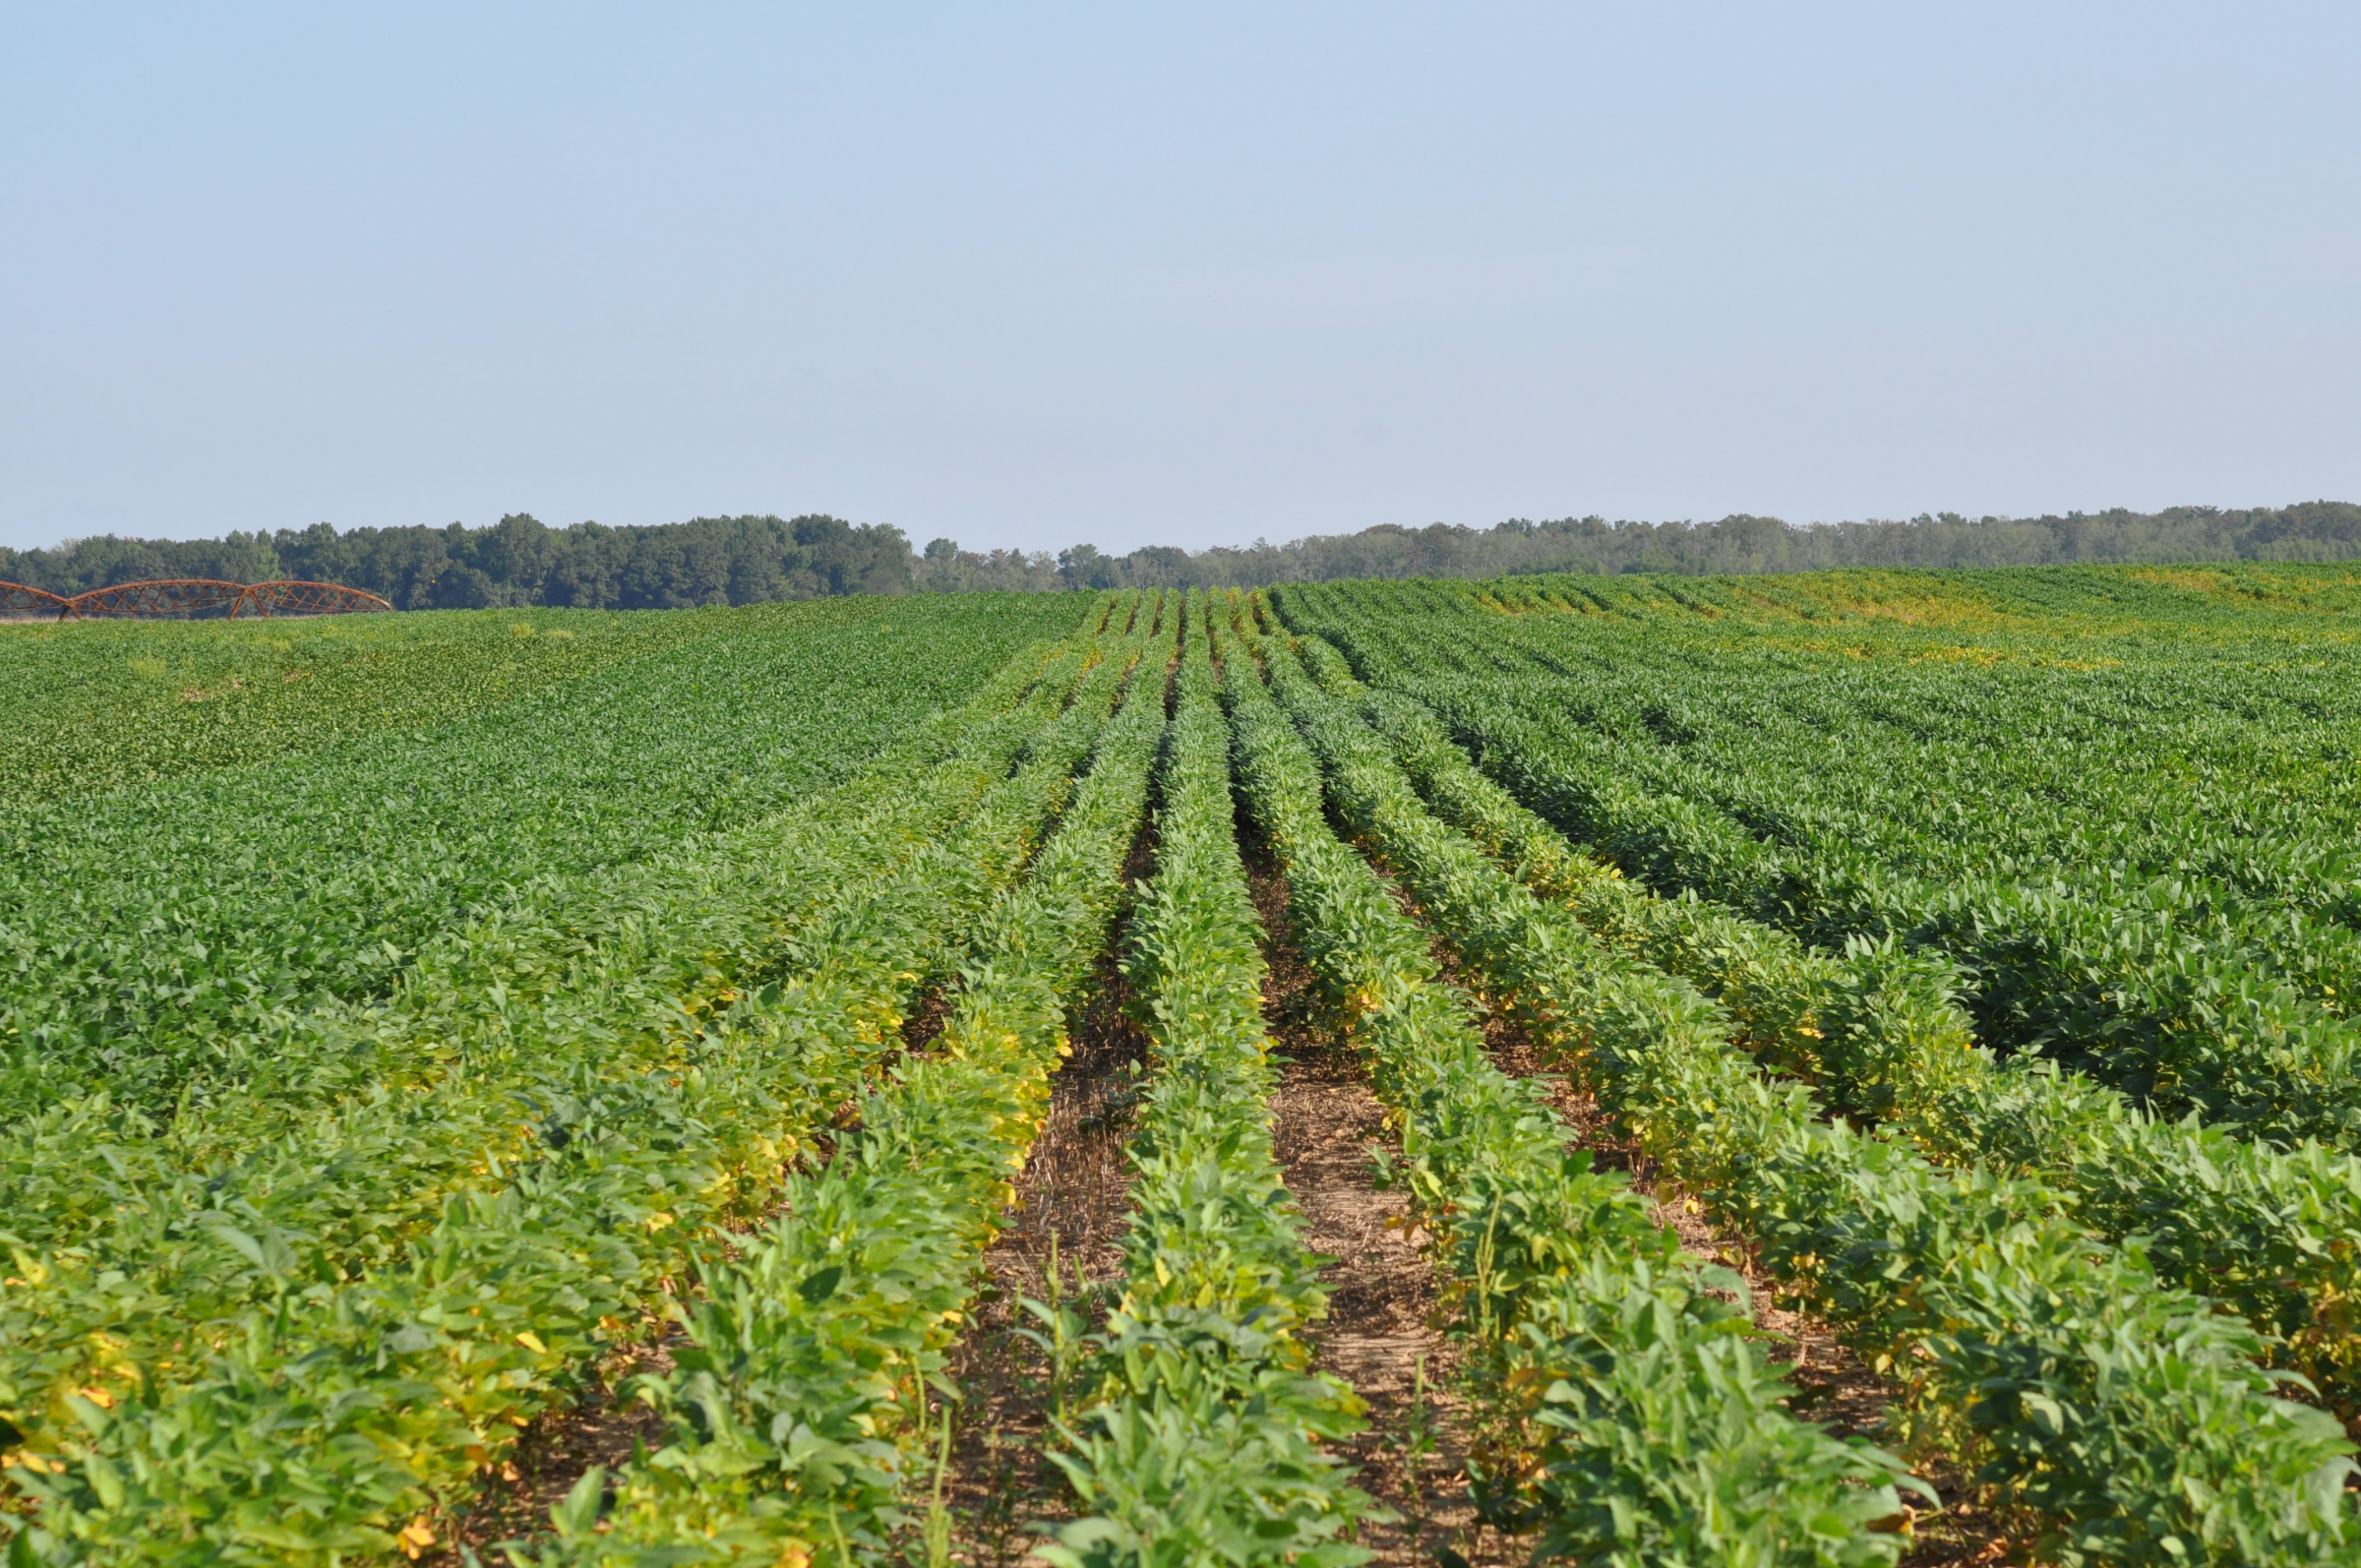 Strips of soybean varieties with an without resistance to root-knot nematode.